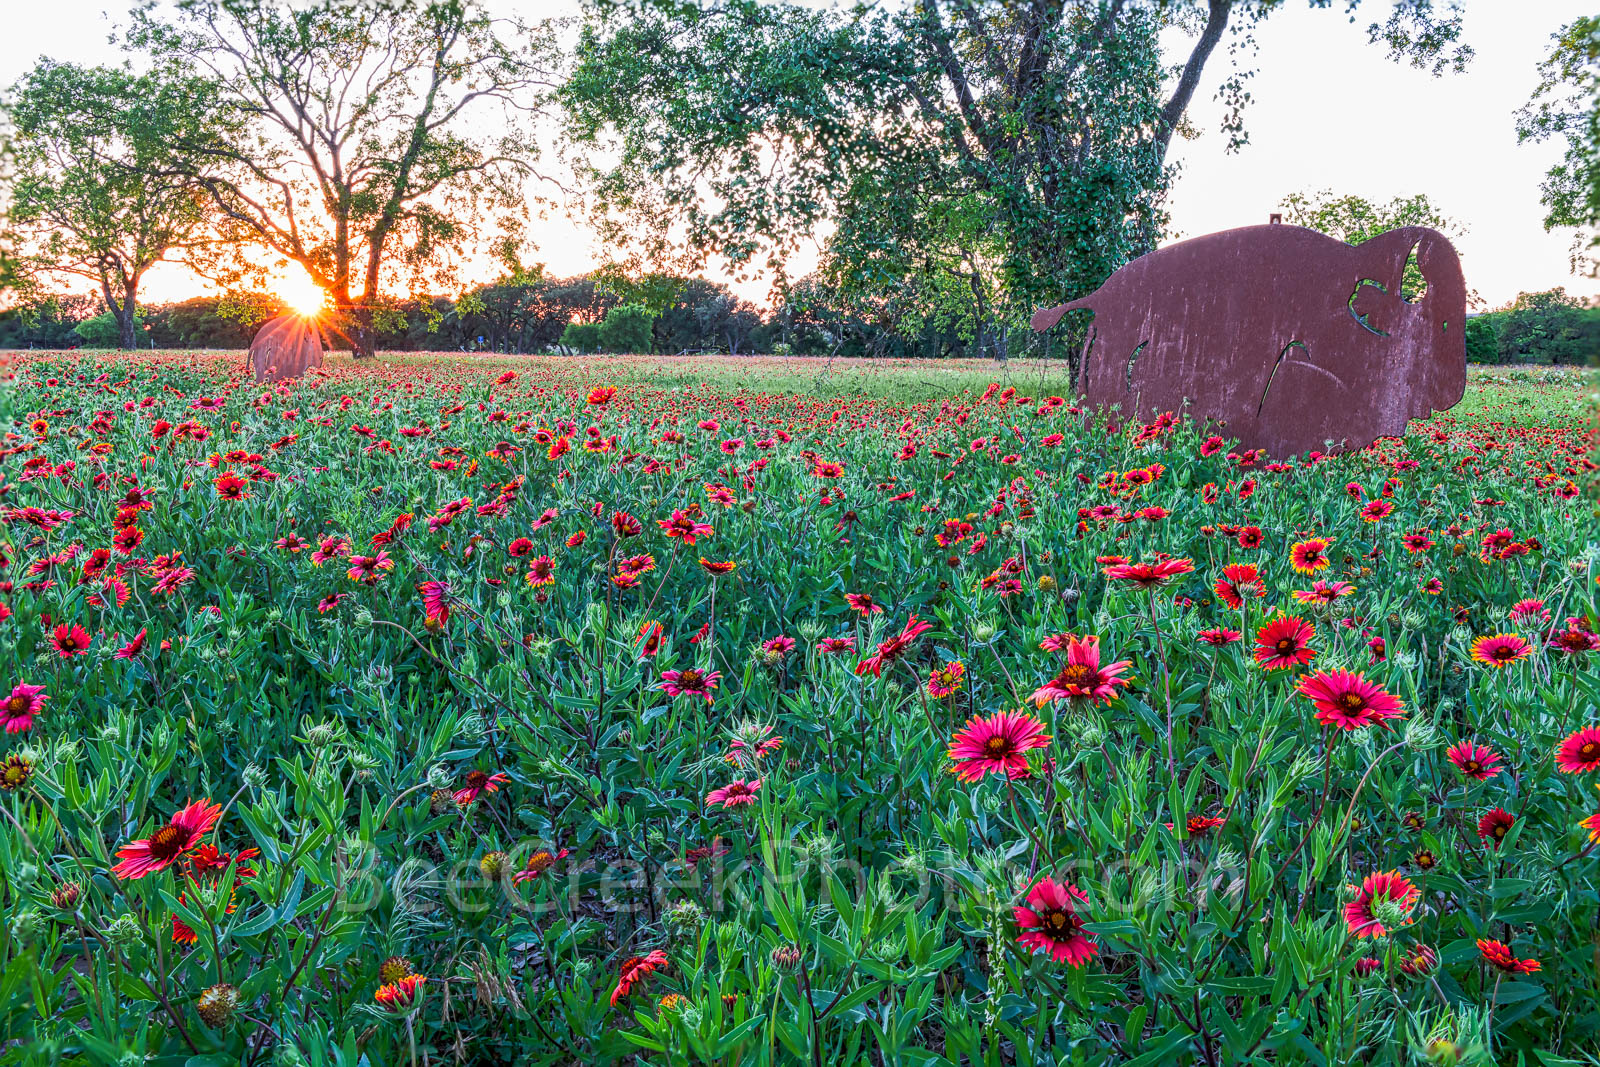 hill Country wildflowers sunset, hill coutry, sunset, metal buffalo, sun rays, firewheel, indian blanket, wildflowers, spring, bison, texas, landscape,, photo